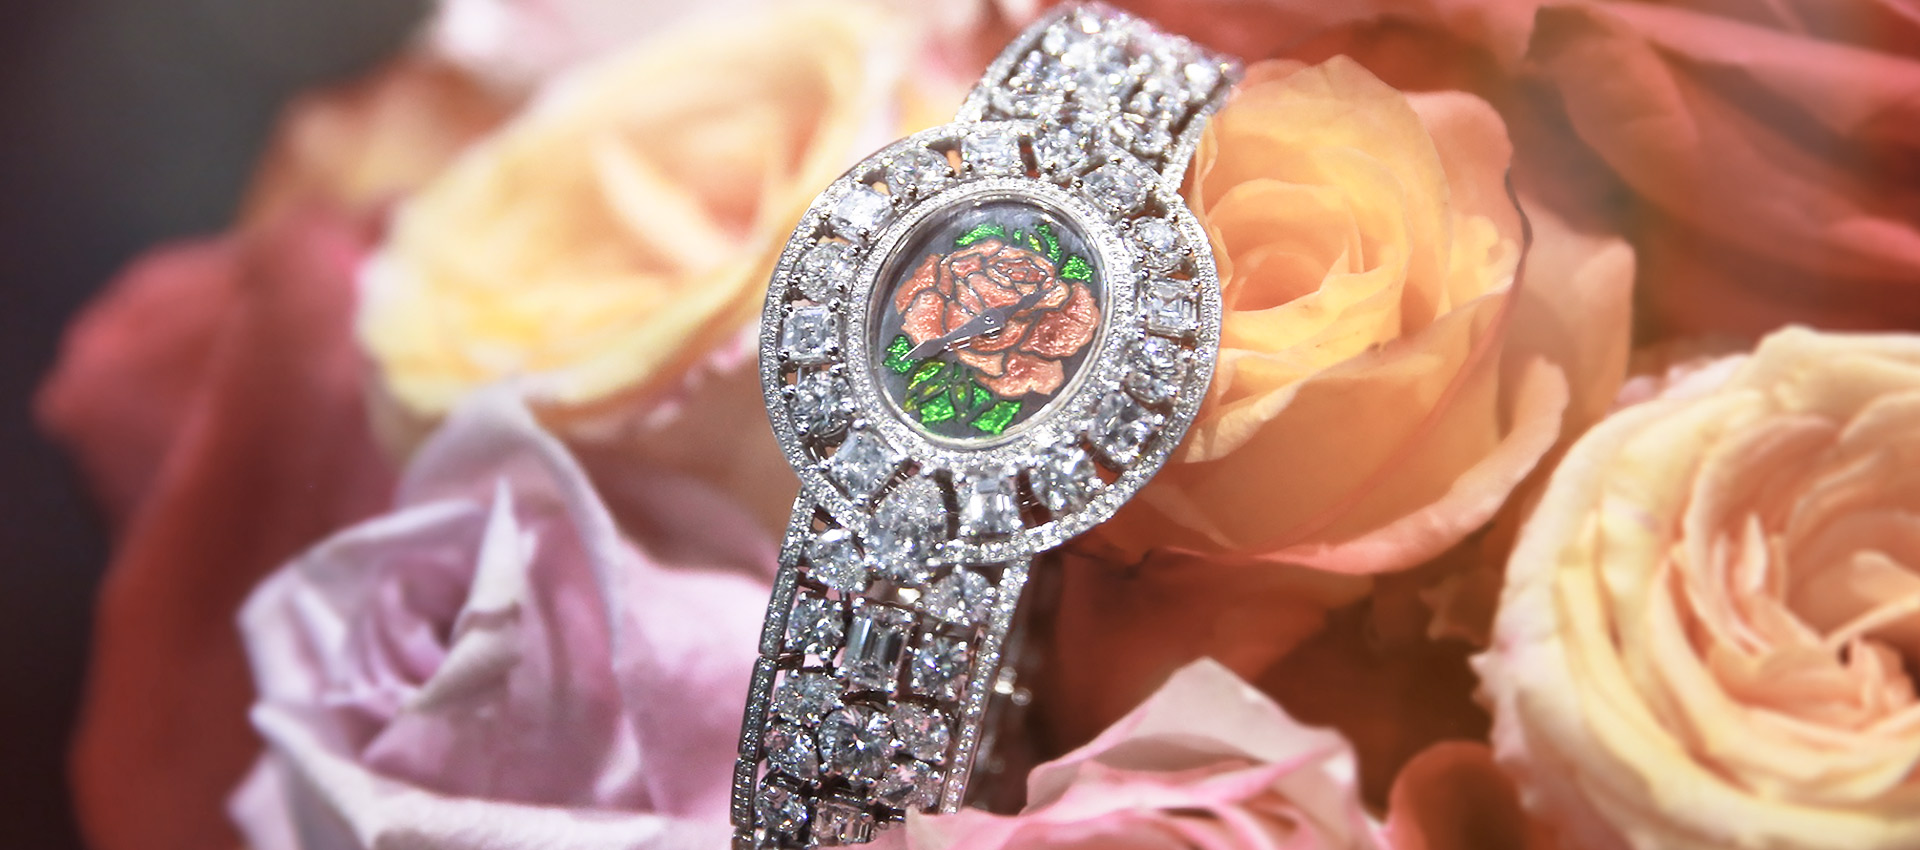 Empress Rose diamond encrusted watch for ladies